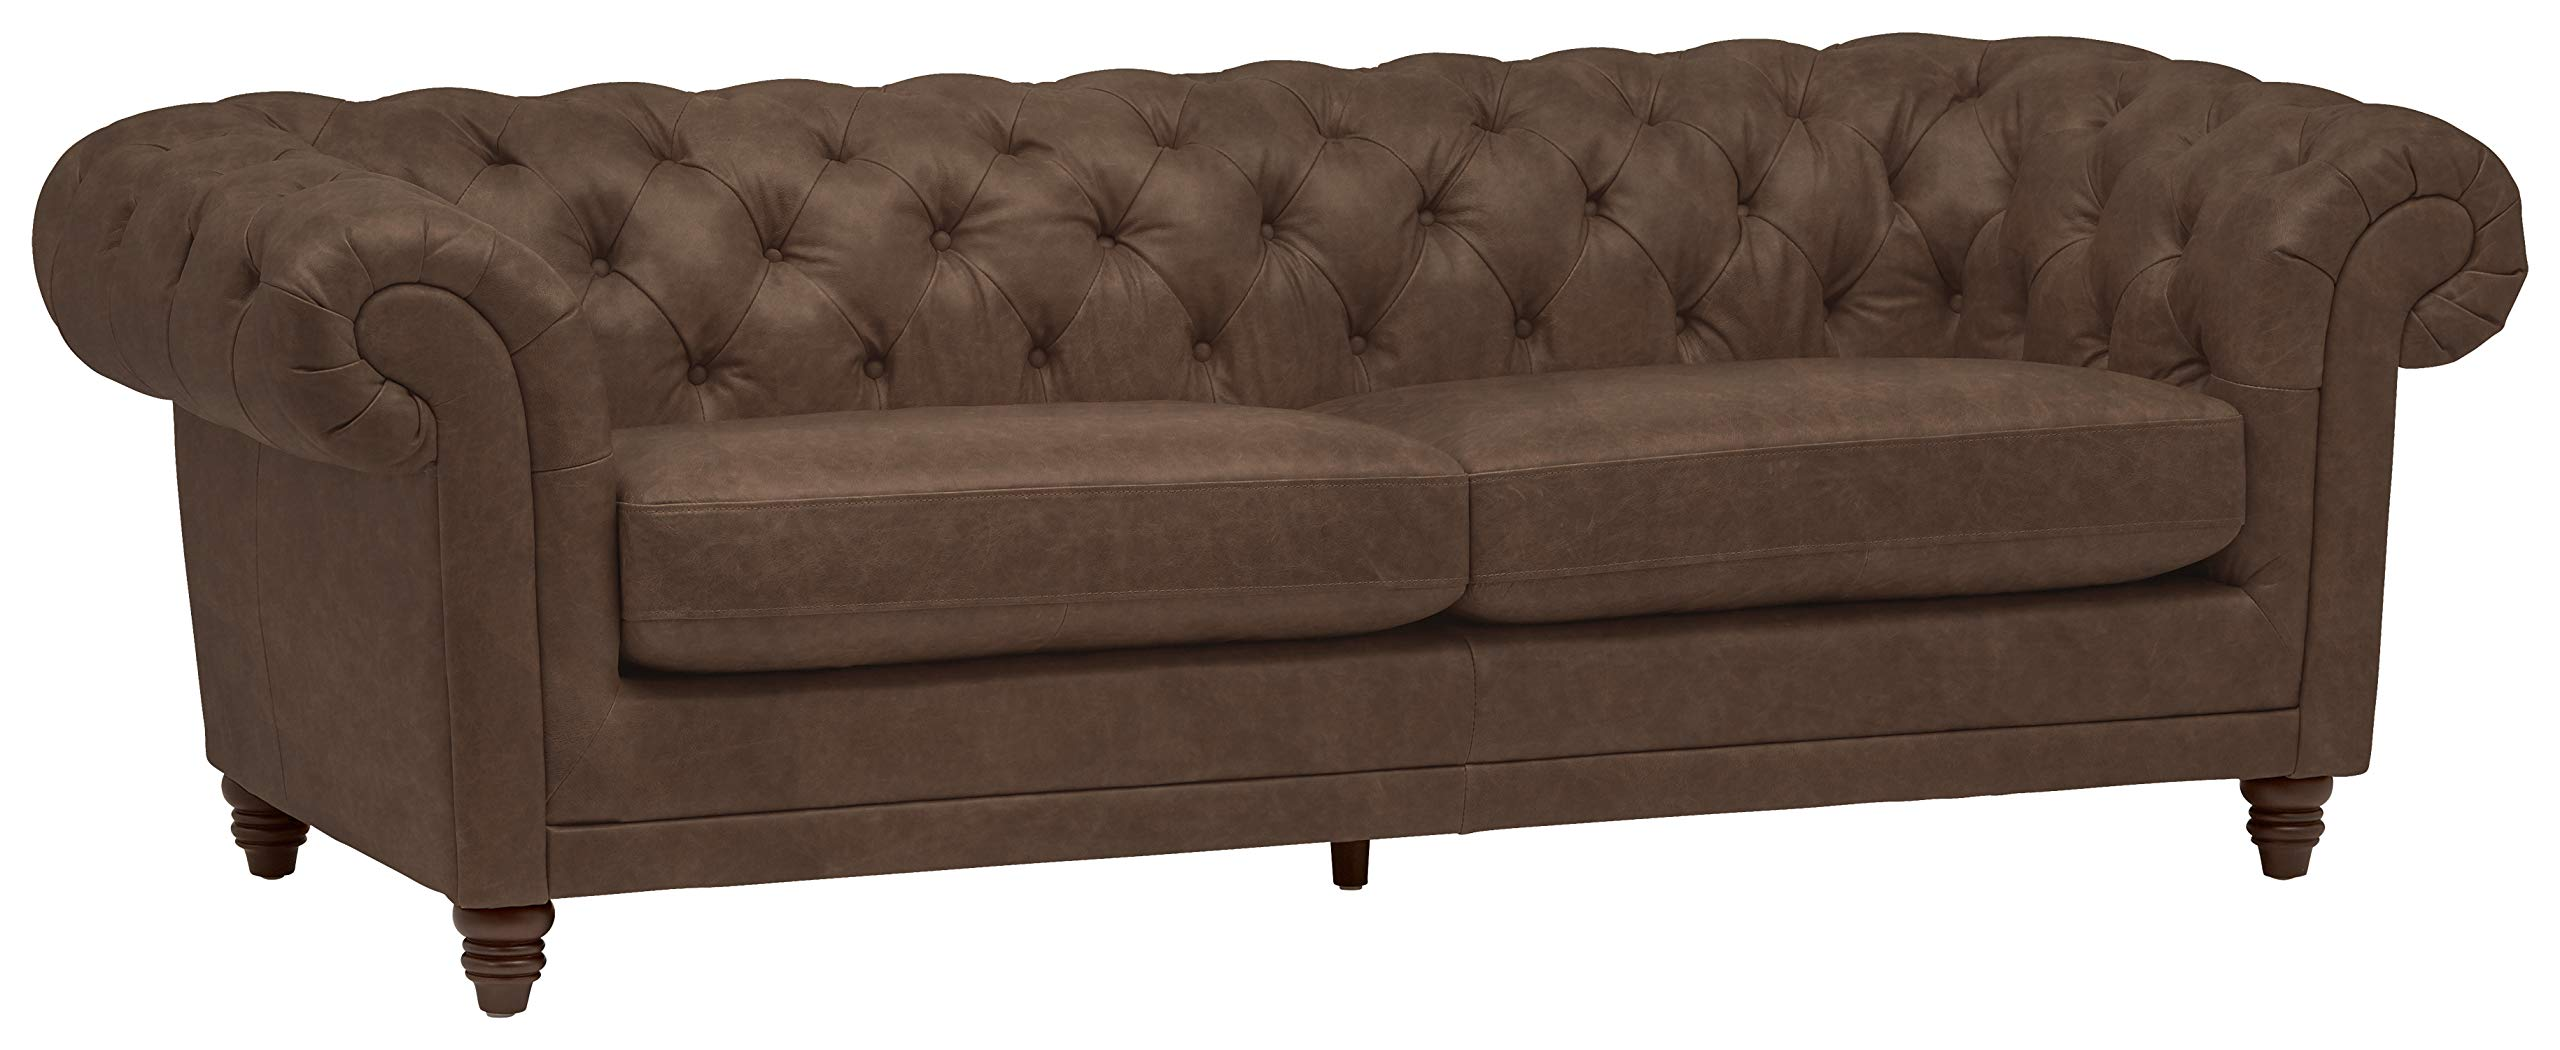 - Stone & Beam Bradbury Chesterfield Tufted Leather Sofa Couch, 92.9